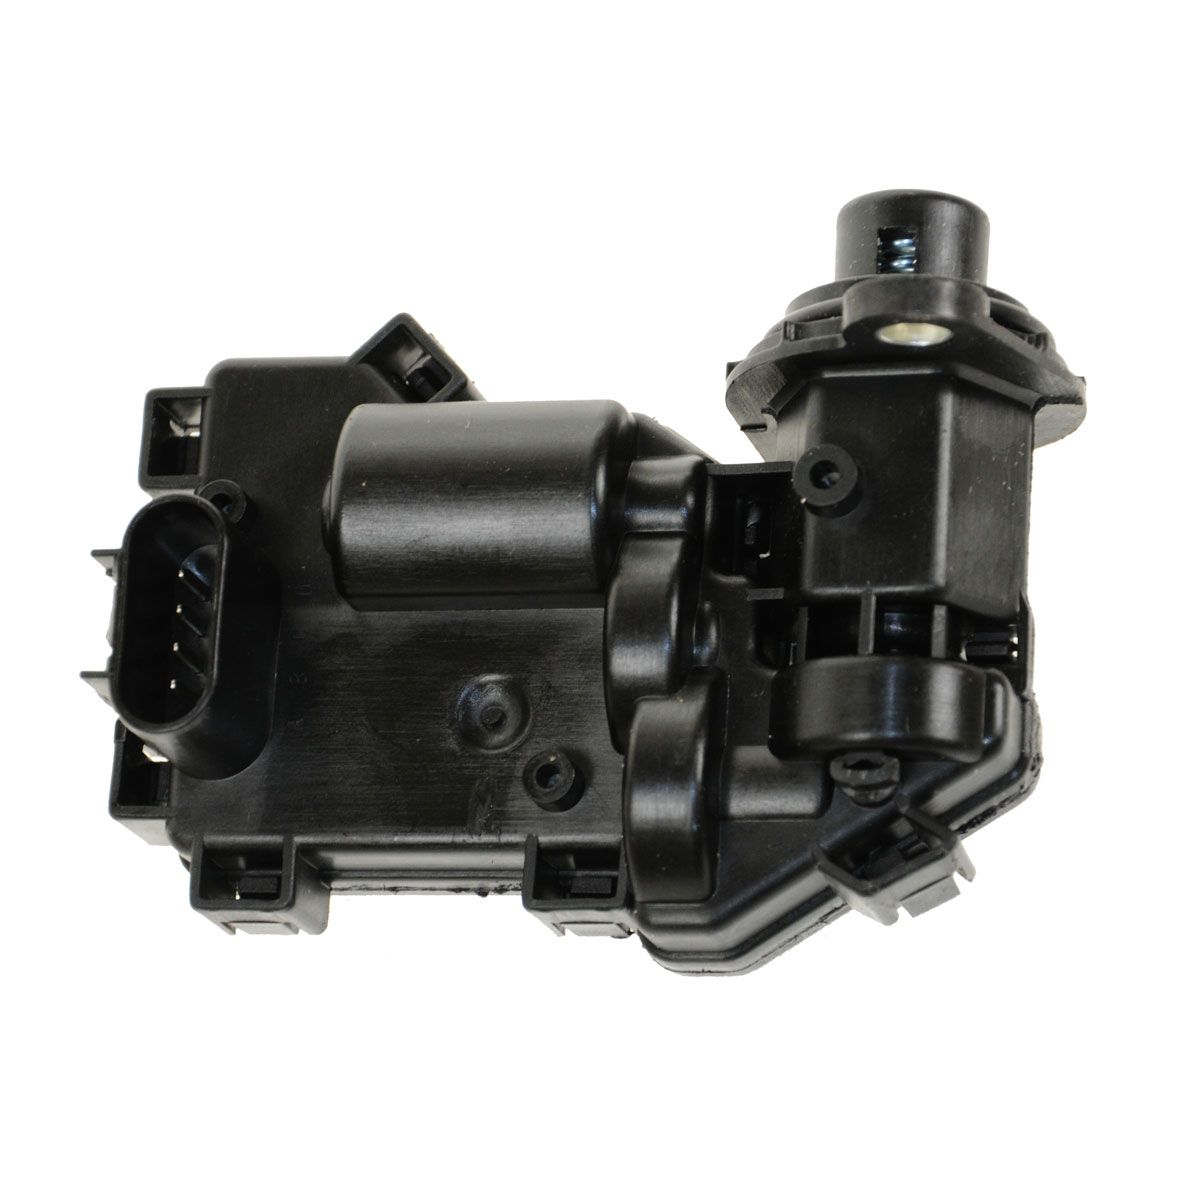 Gm 4x4 Front Axle Housing : Front axle differential wd drive shift actuator